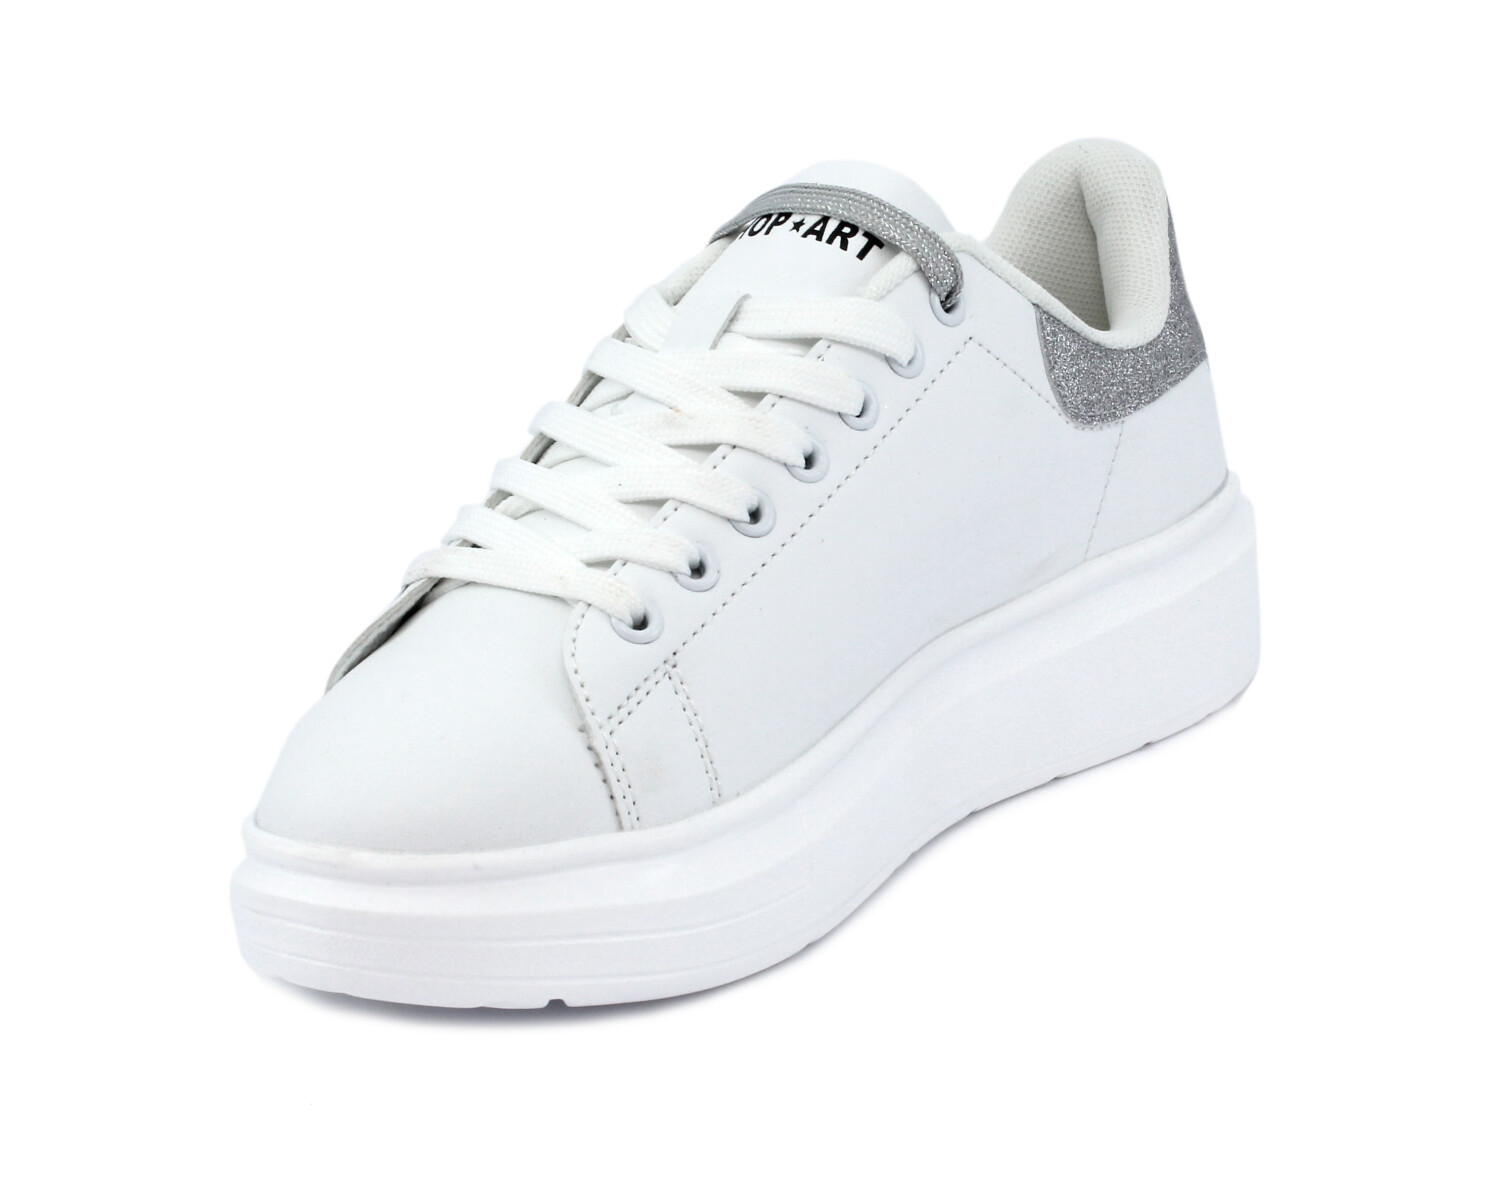 Sneaker SHOP ART 030004 WHITE/SILVER